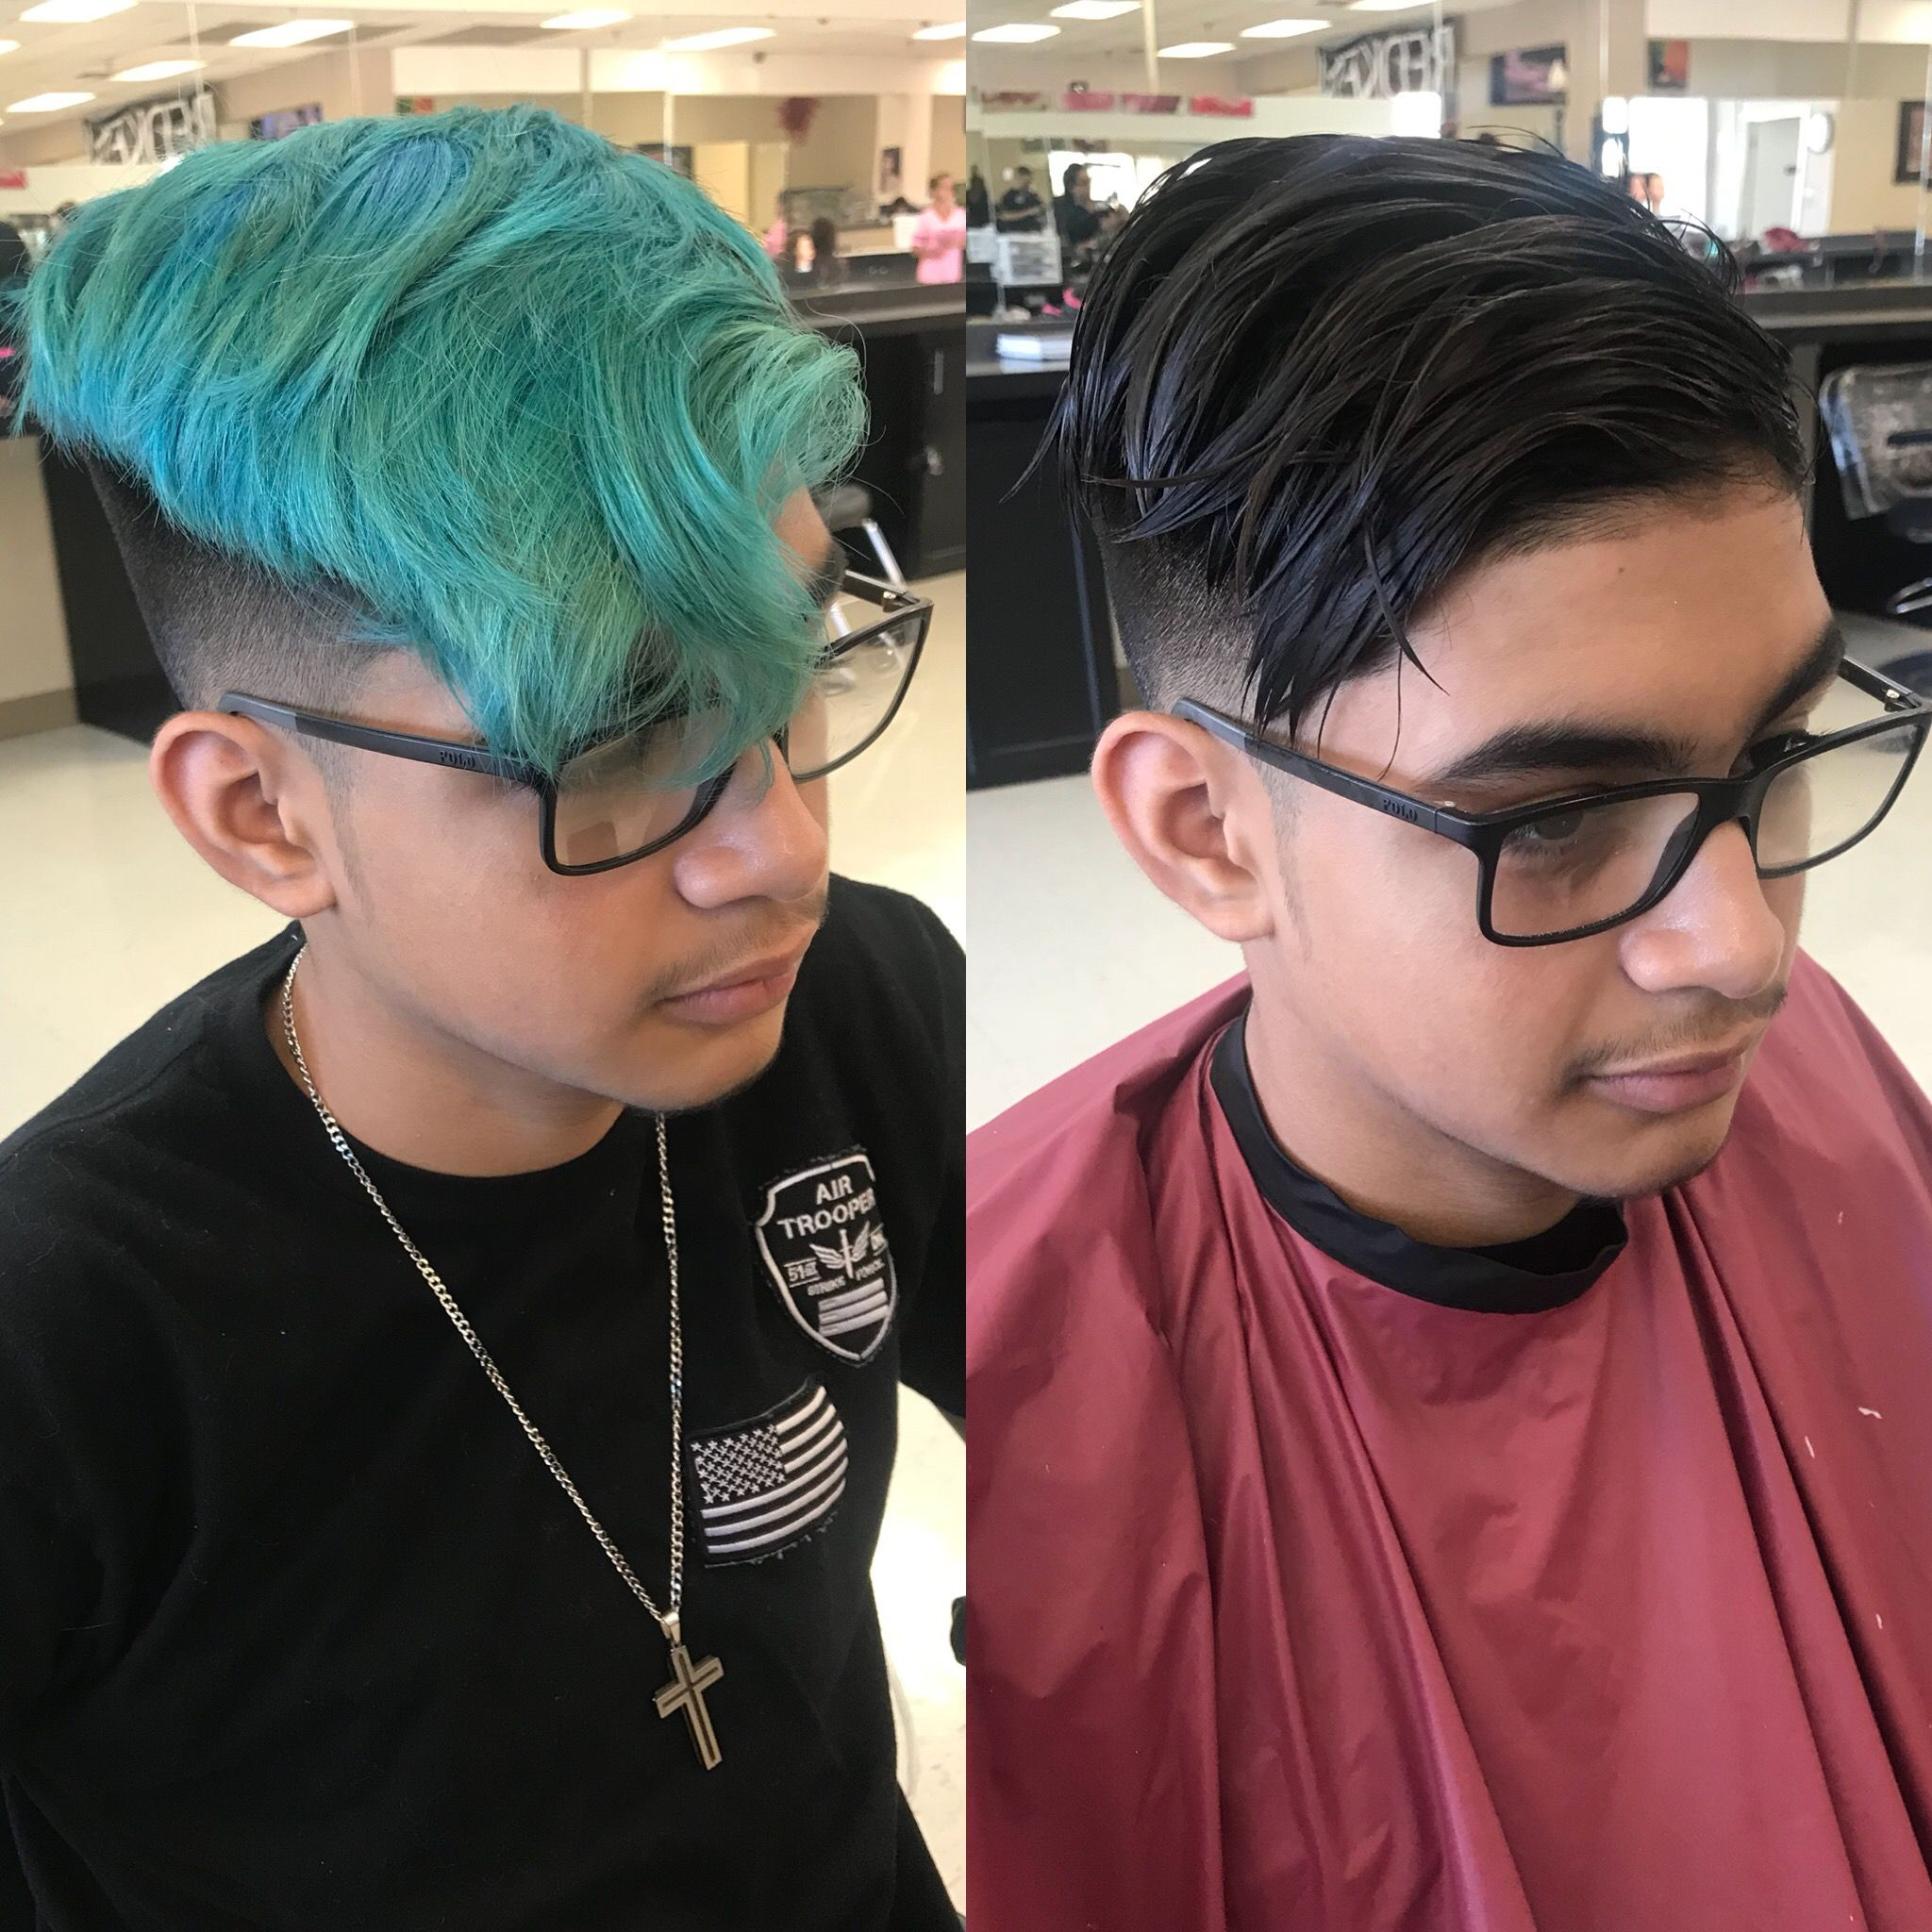 What A Fun Color Correction This Guy Came In With Blue